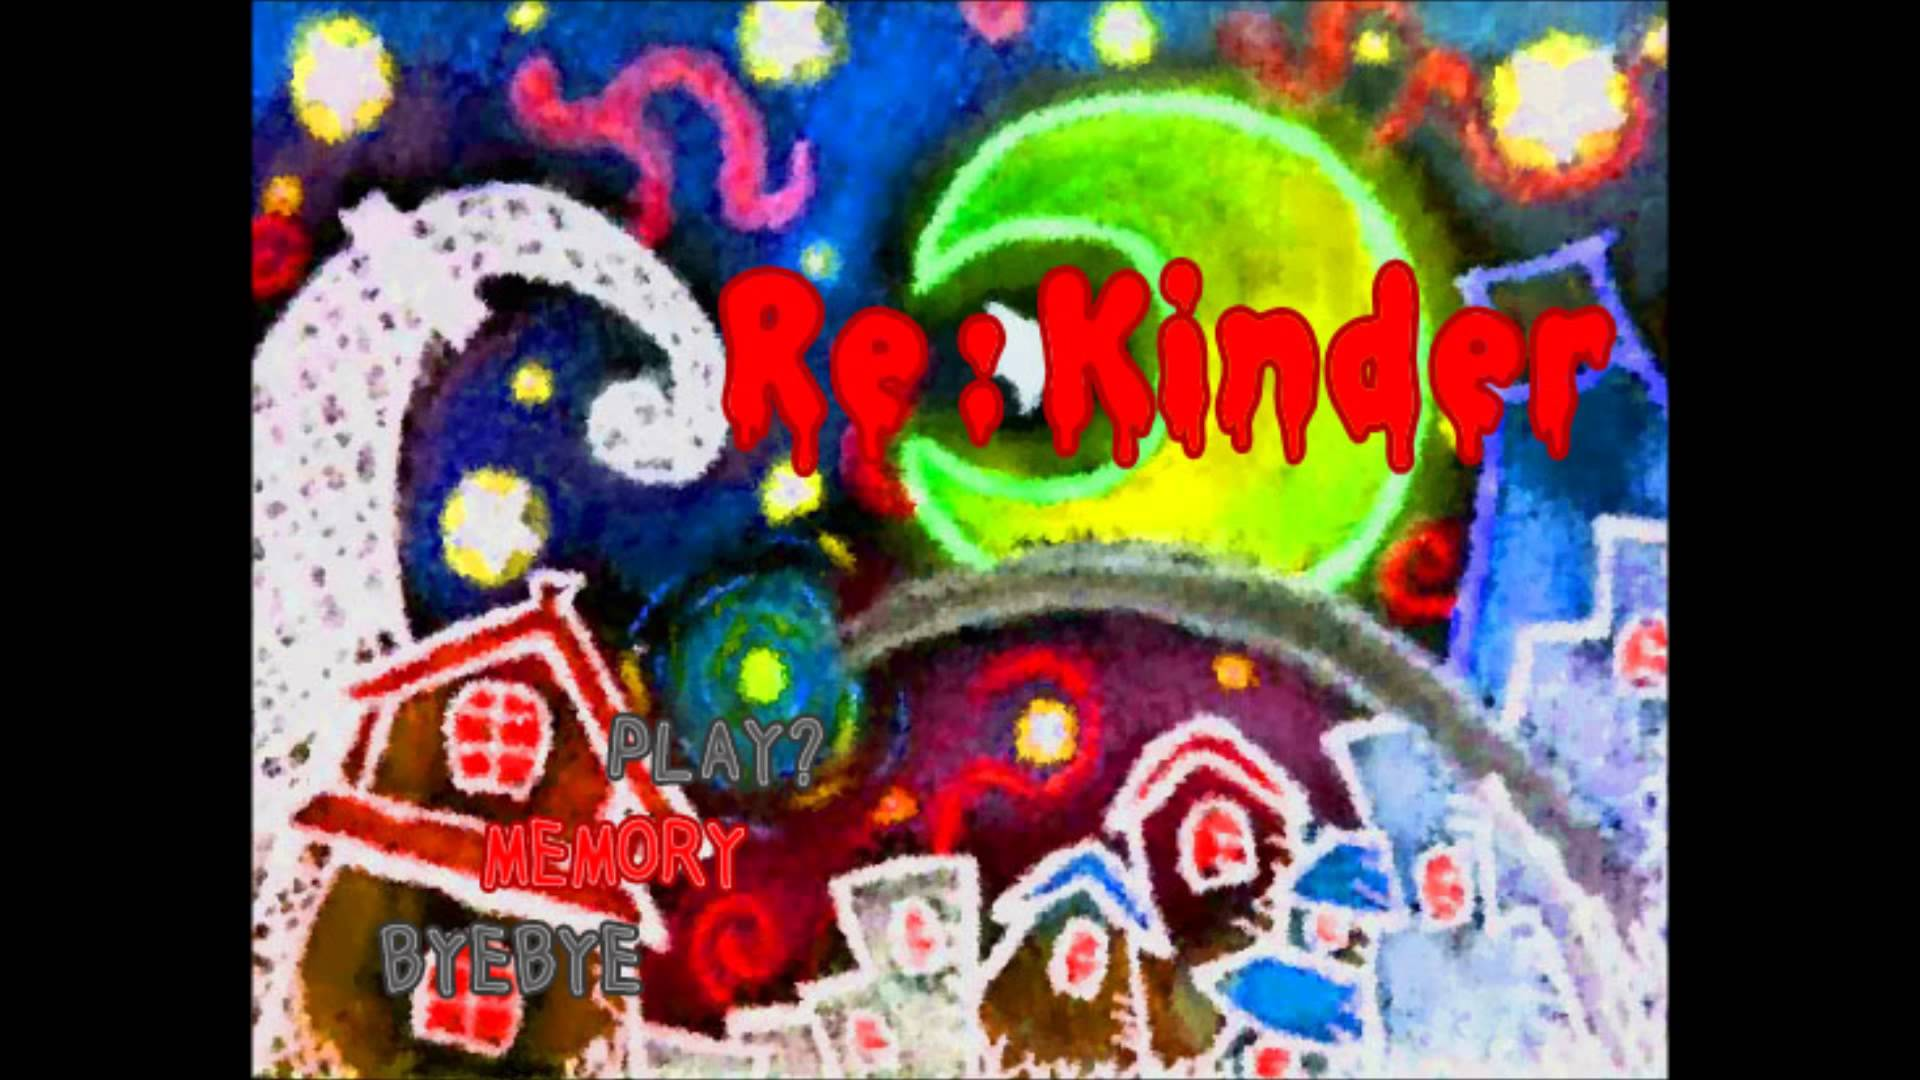 Re:Kinder | RPG Maker Horror Games Wikia | FANDOM powered by